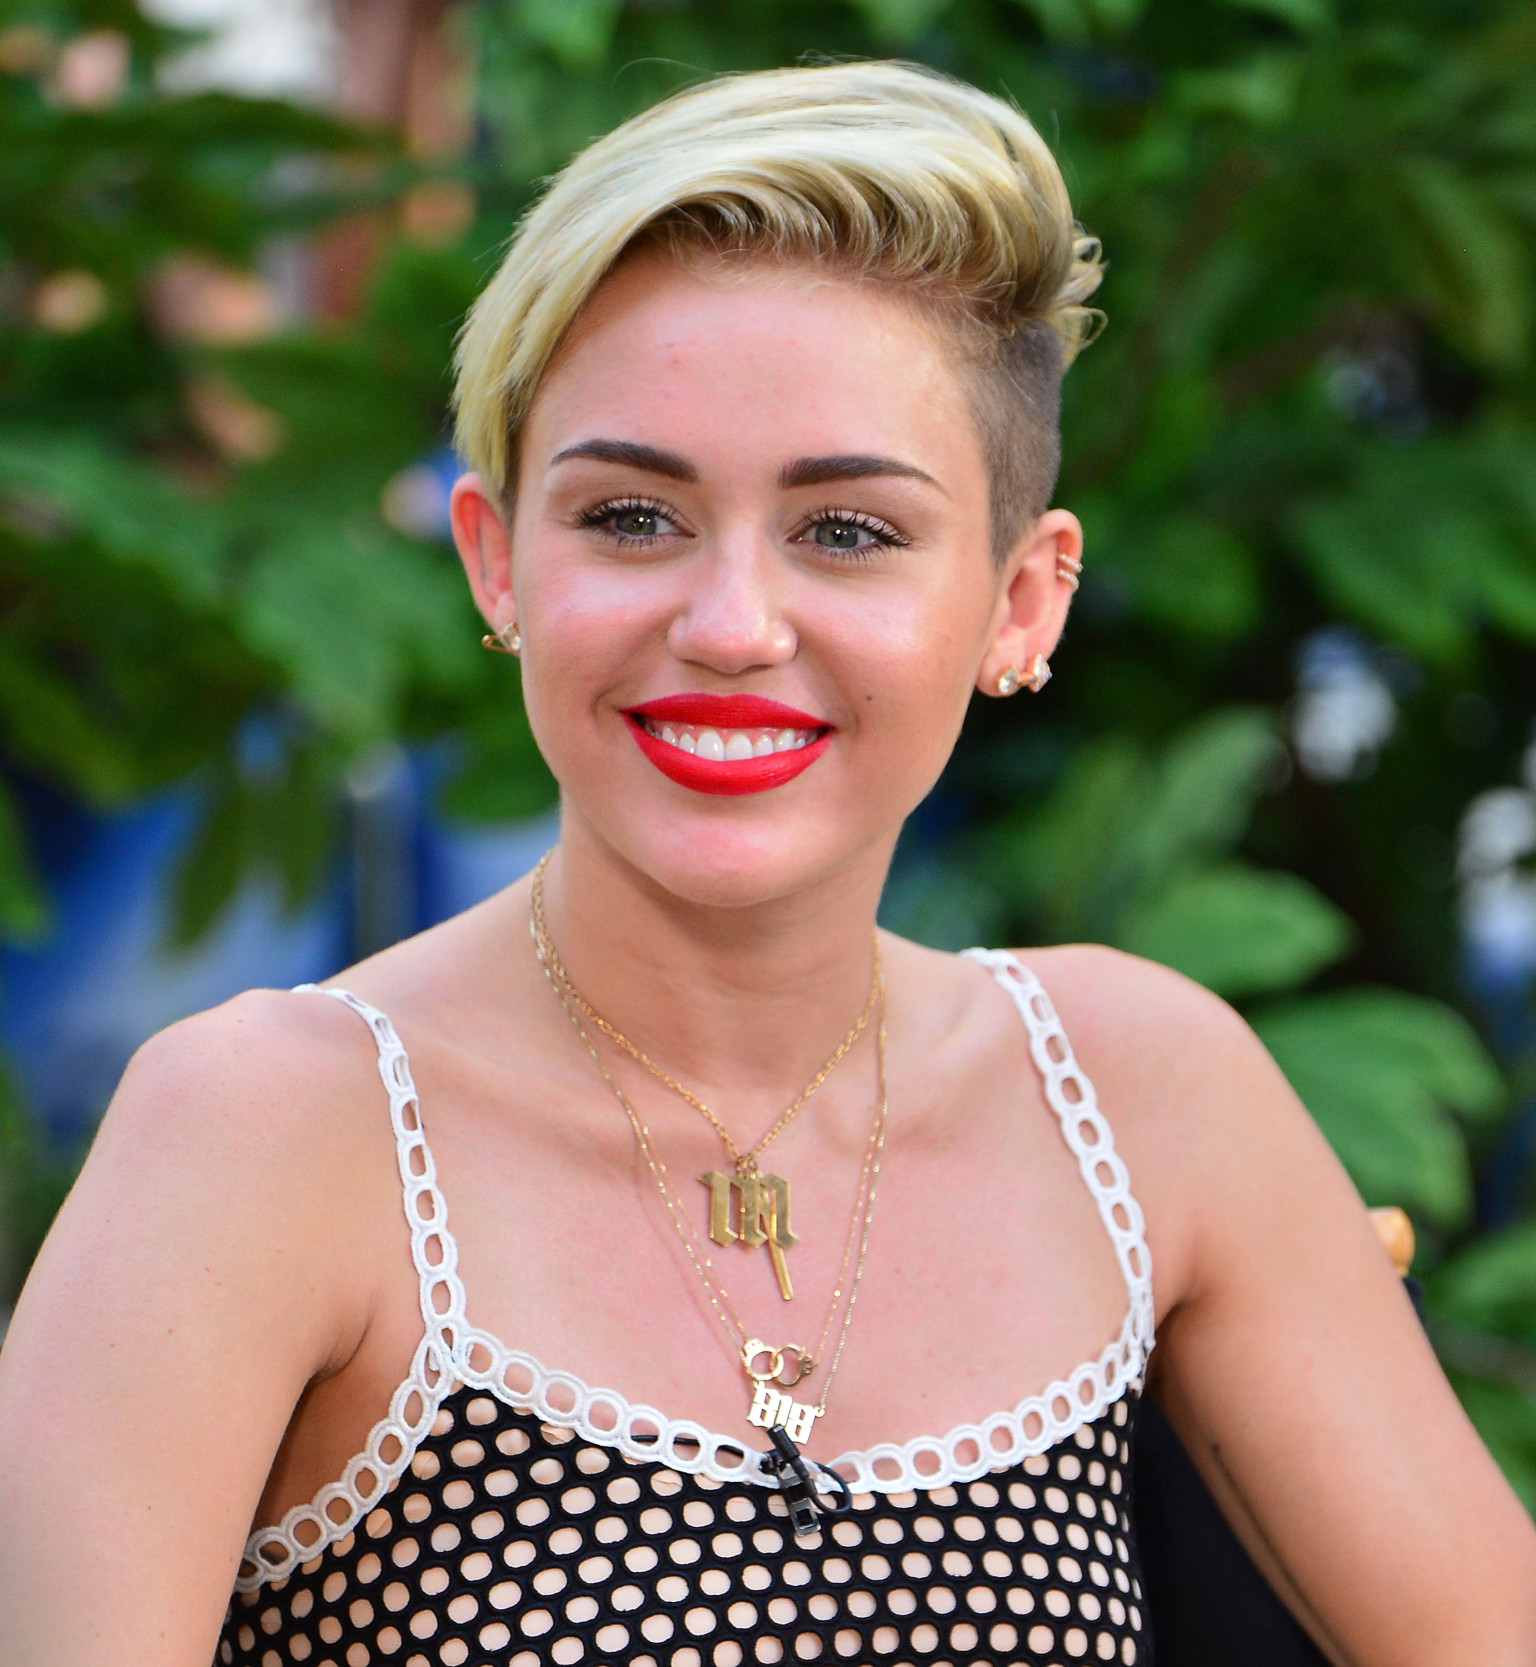 Miley Cyrus: Miley Cyrus' Haircut 'Changed Her Life